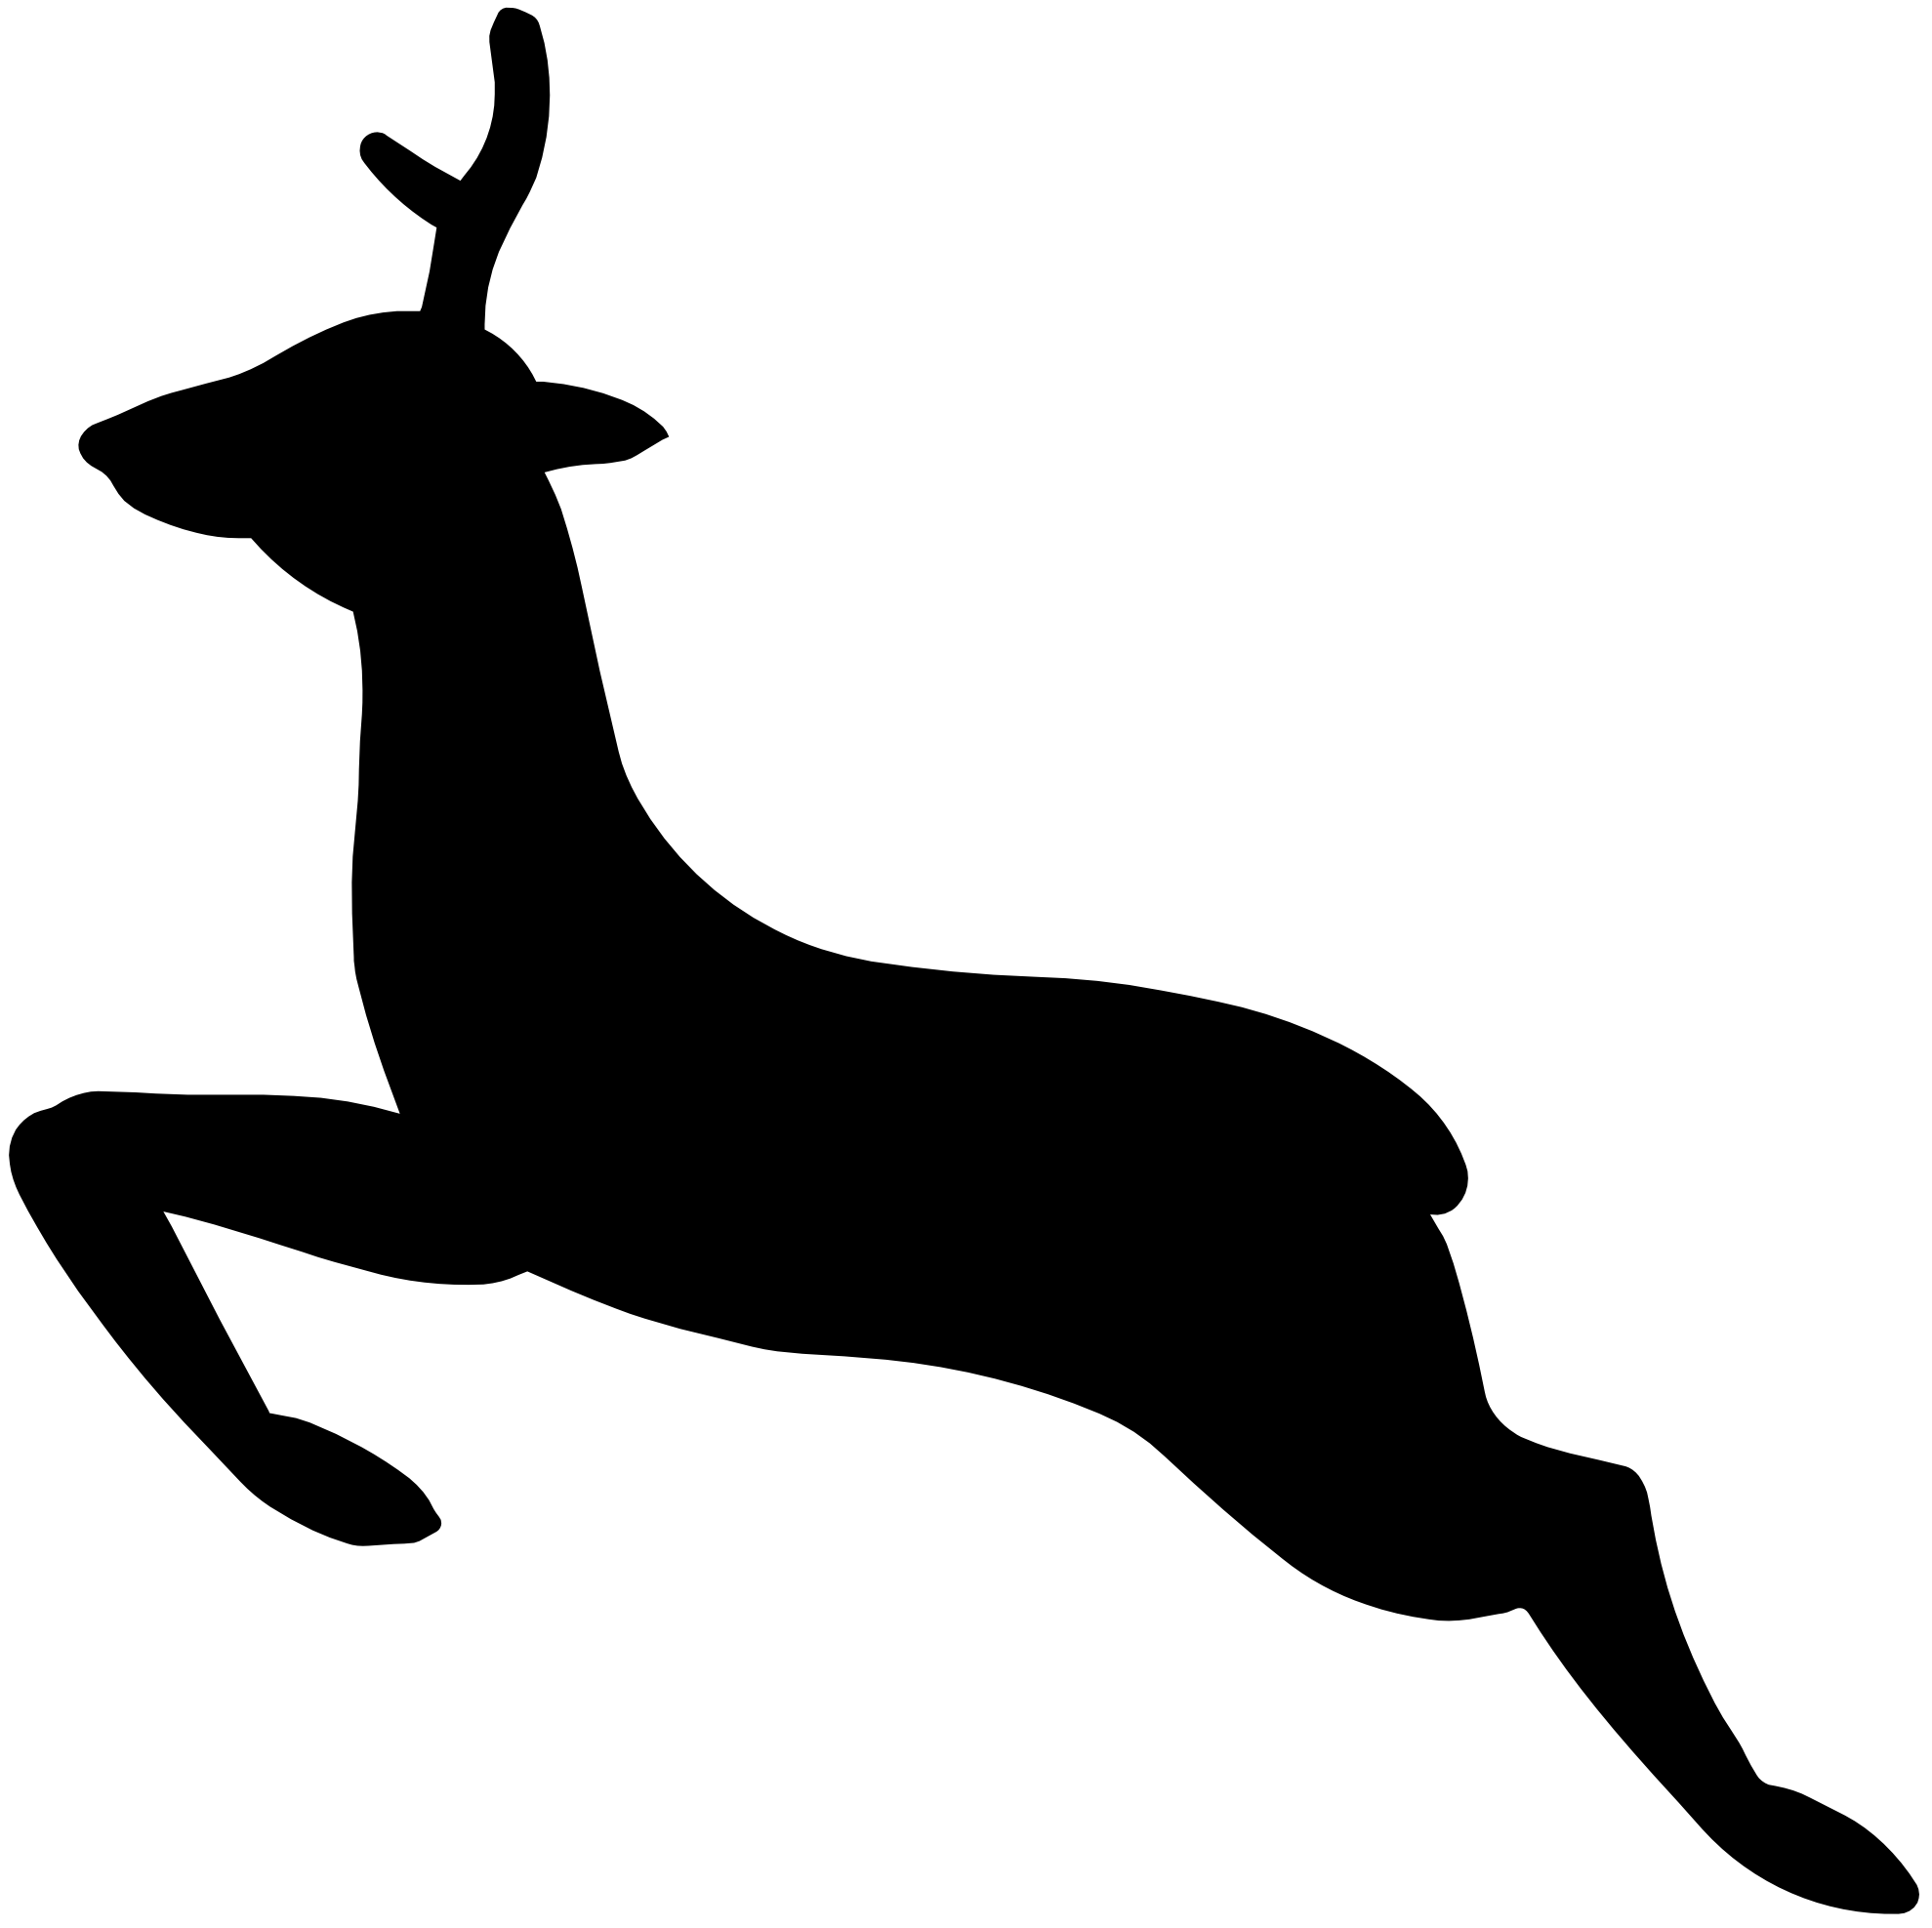 Related Pictures Famous Whitetail Deer Clip Art